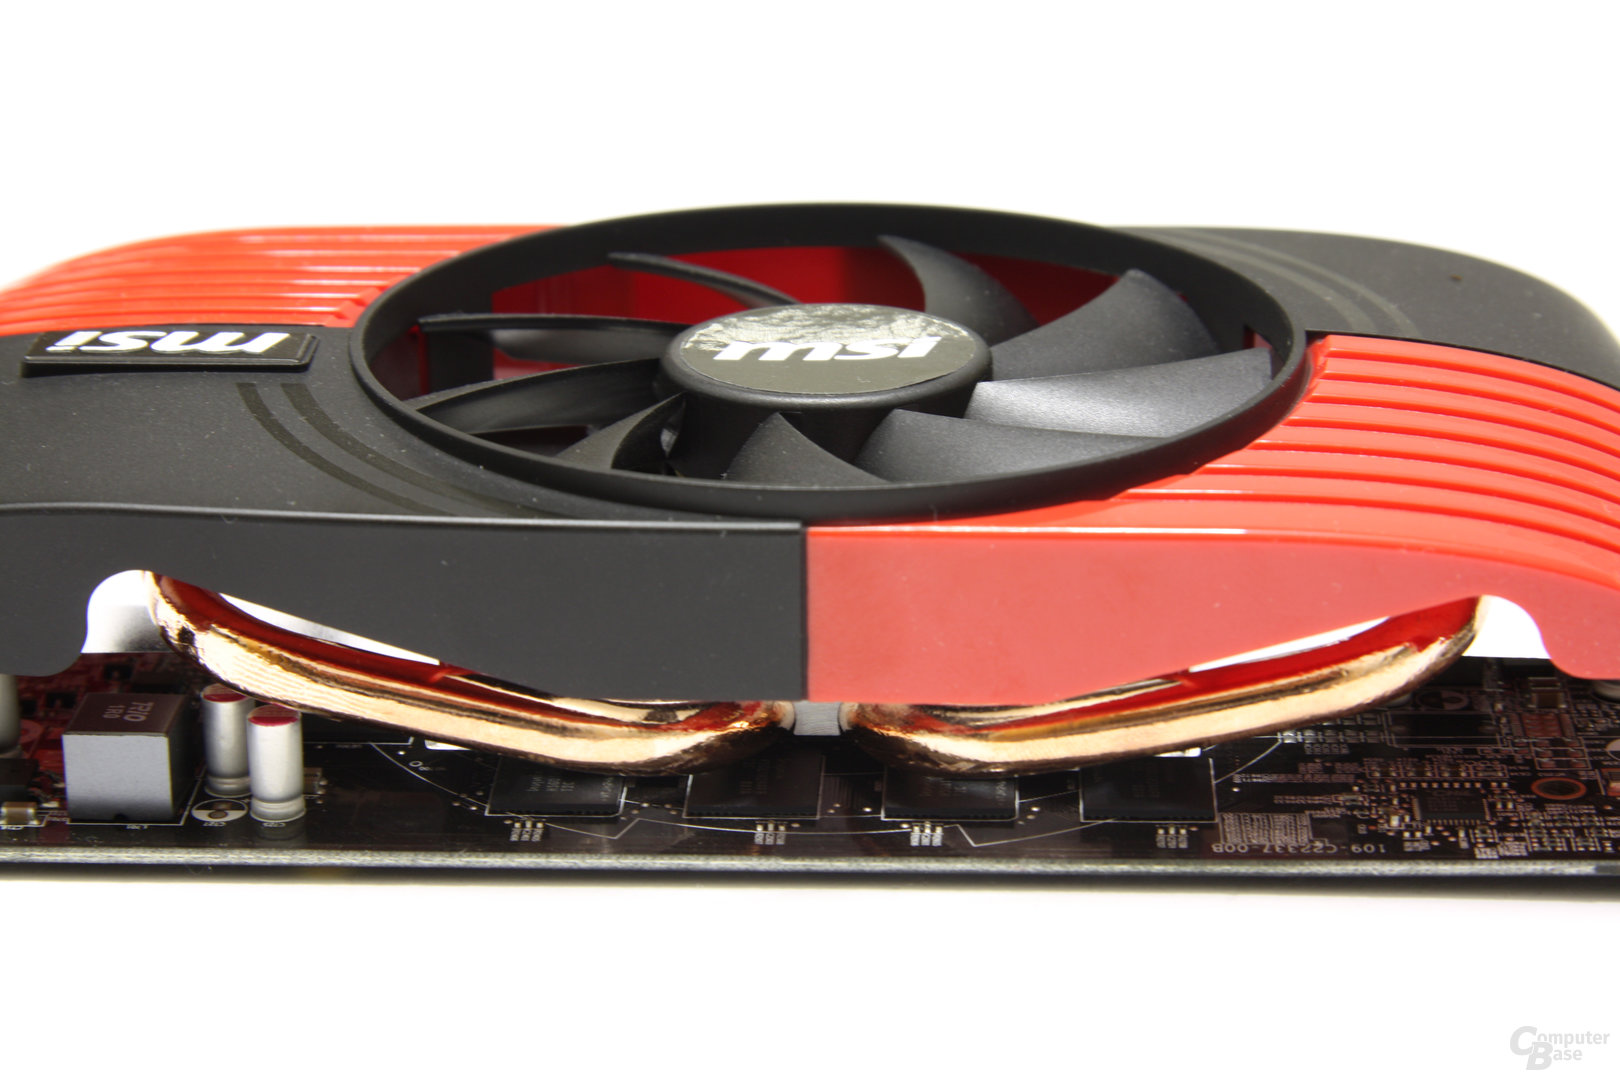 Radeon HD 6850 Heatpipes